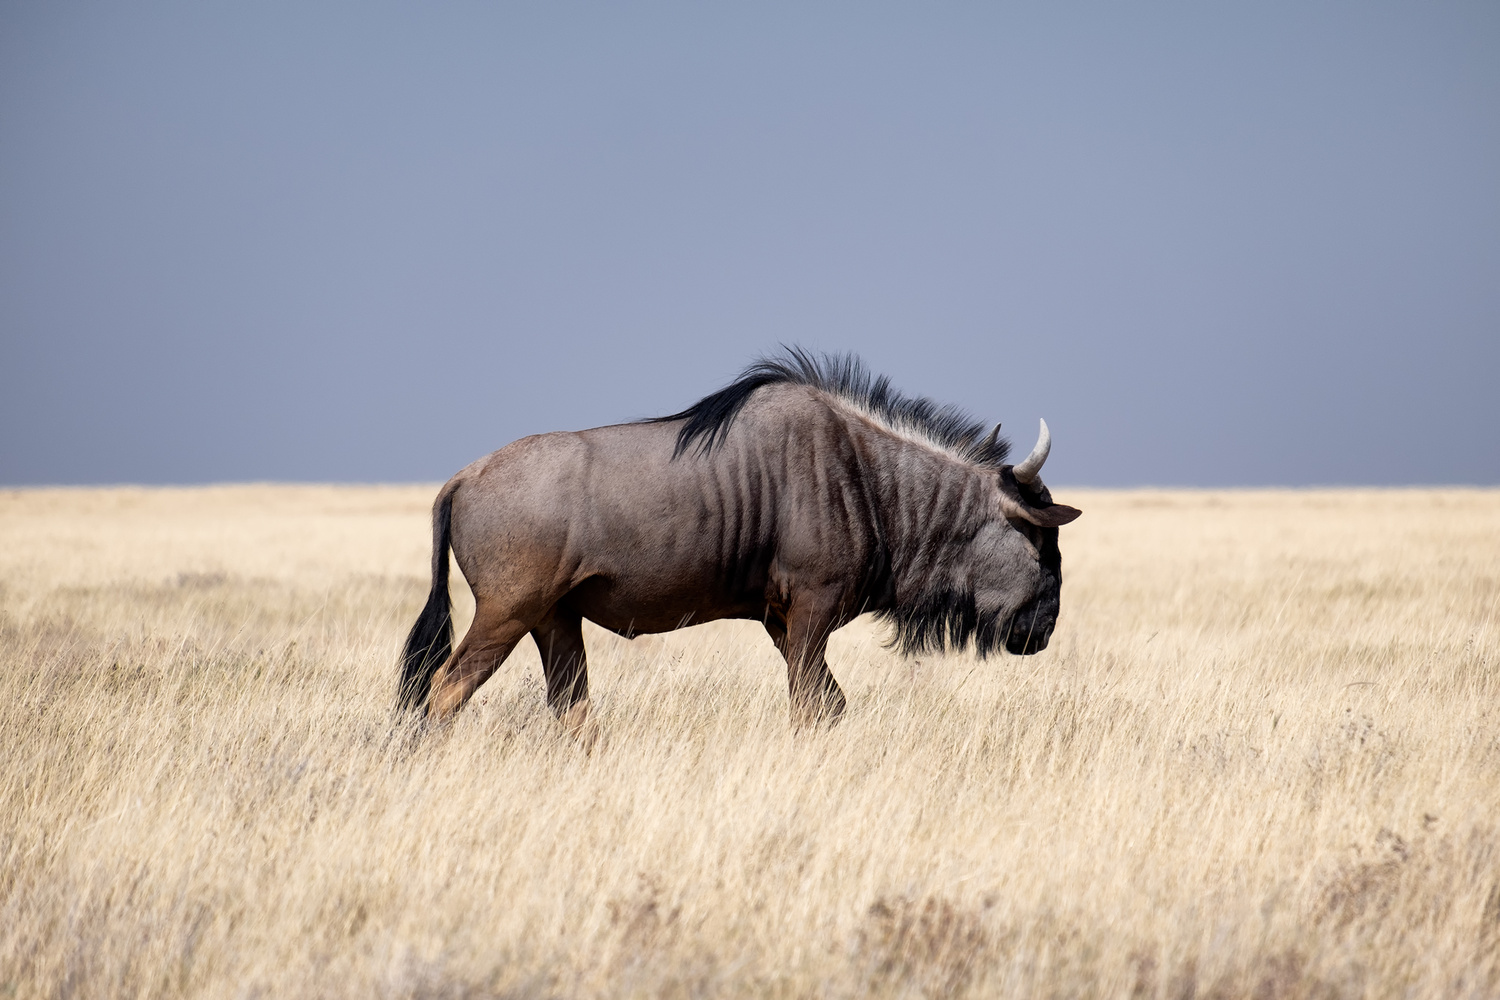 Wildebeest by Andrea Re Depaolini